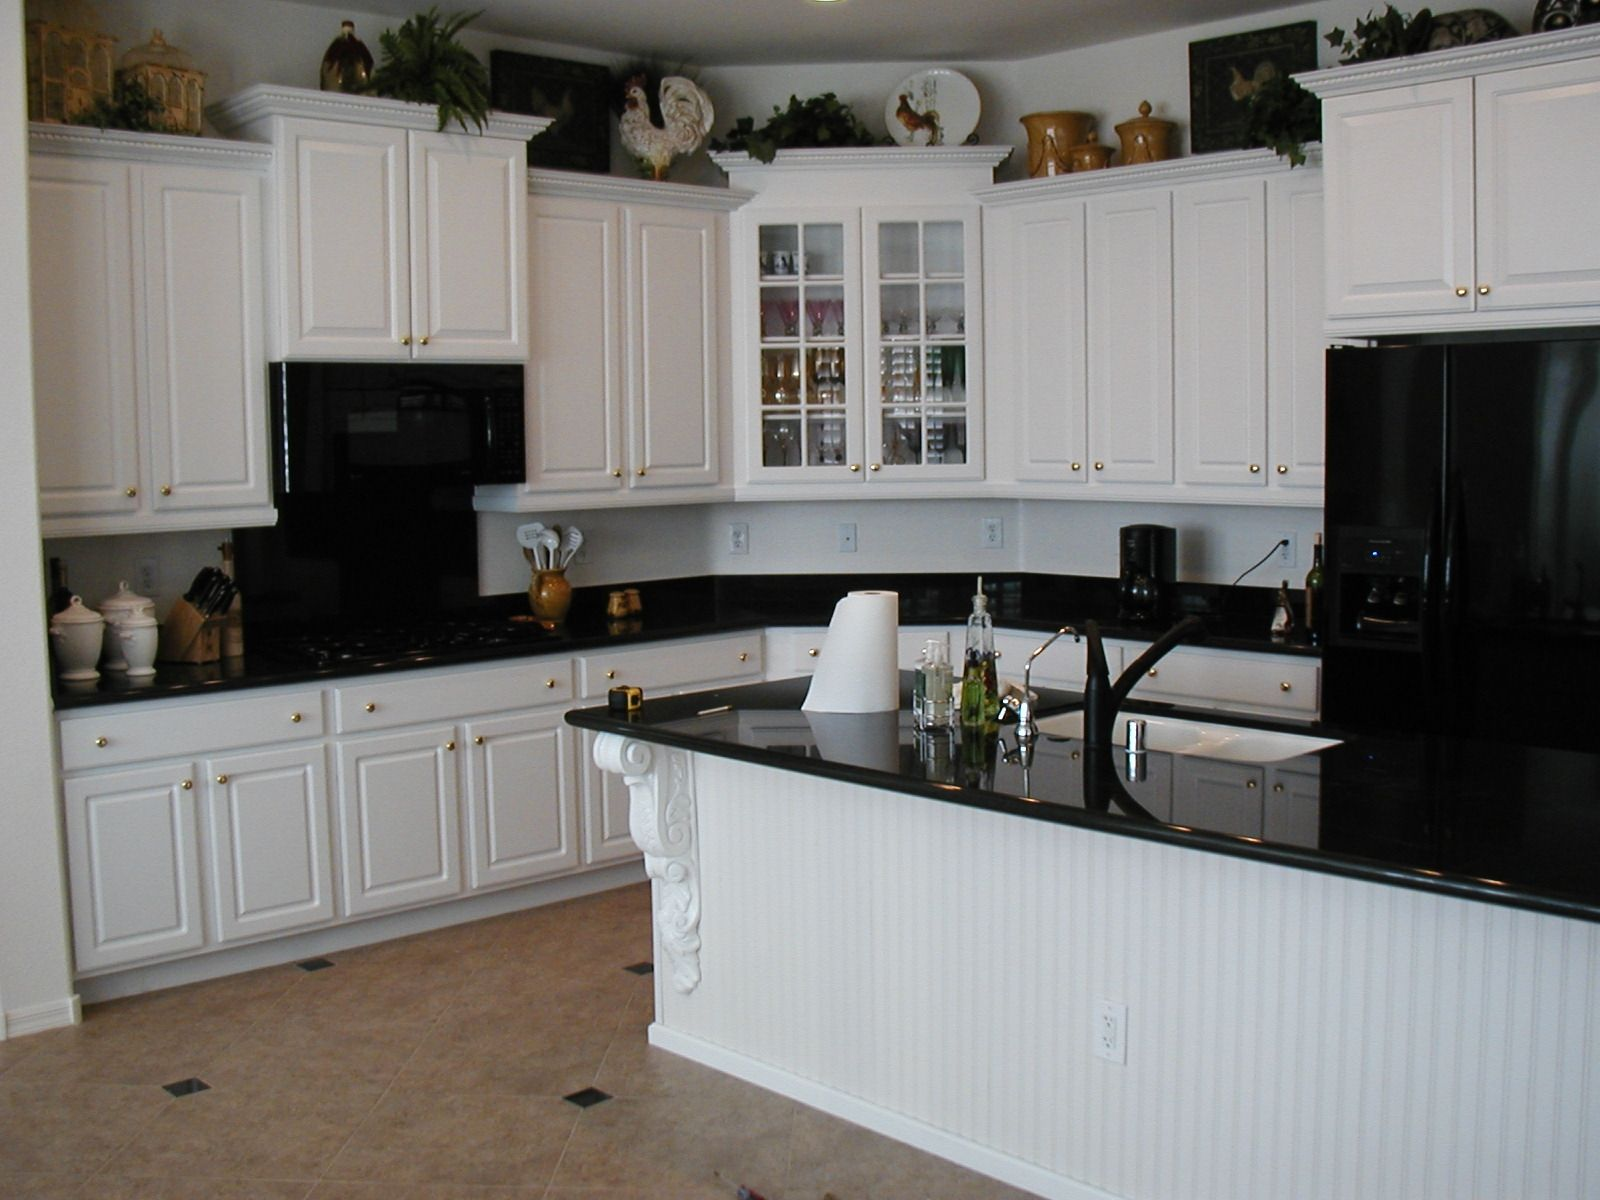 Uncategorized White Kitchen Cabinets With White Appliances creamy white kitchen cabinets with black appliances are ever stylish